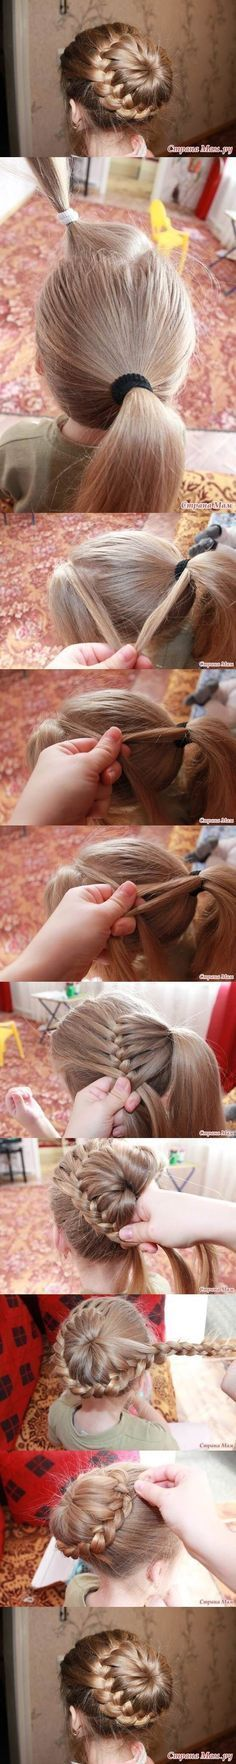 Latest Adorable Hairstyles for Little Girls Cute hairstyles for girls are the fastest changing sector of hair-fashion, so if you haven't checked what's new for                                                                                                                                                                                 More